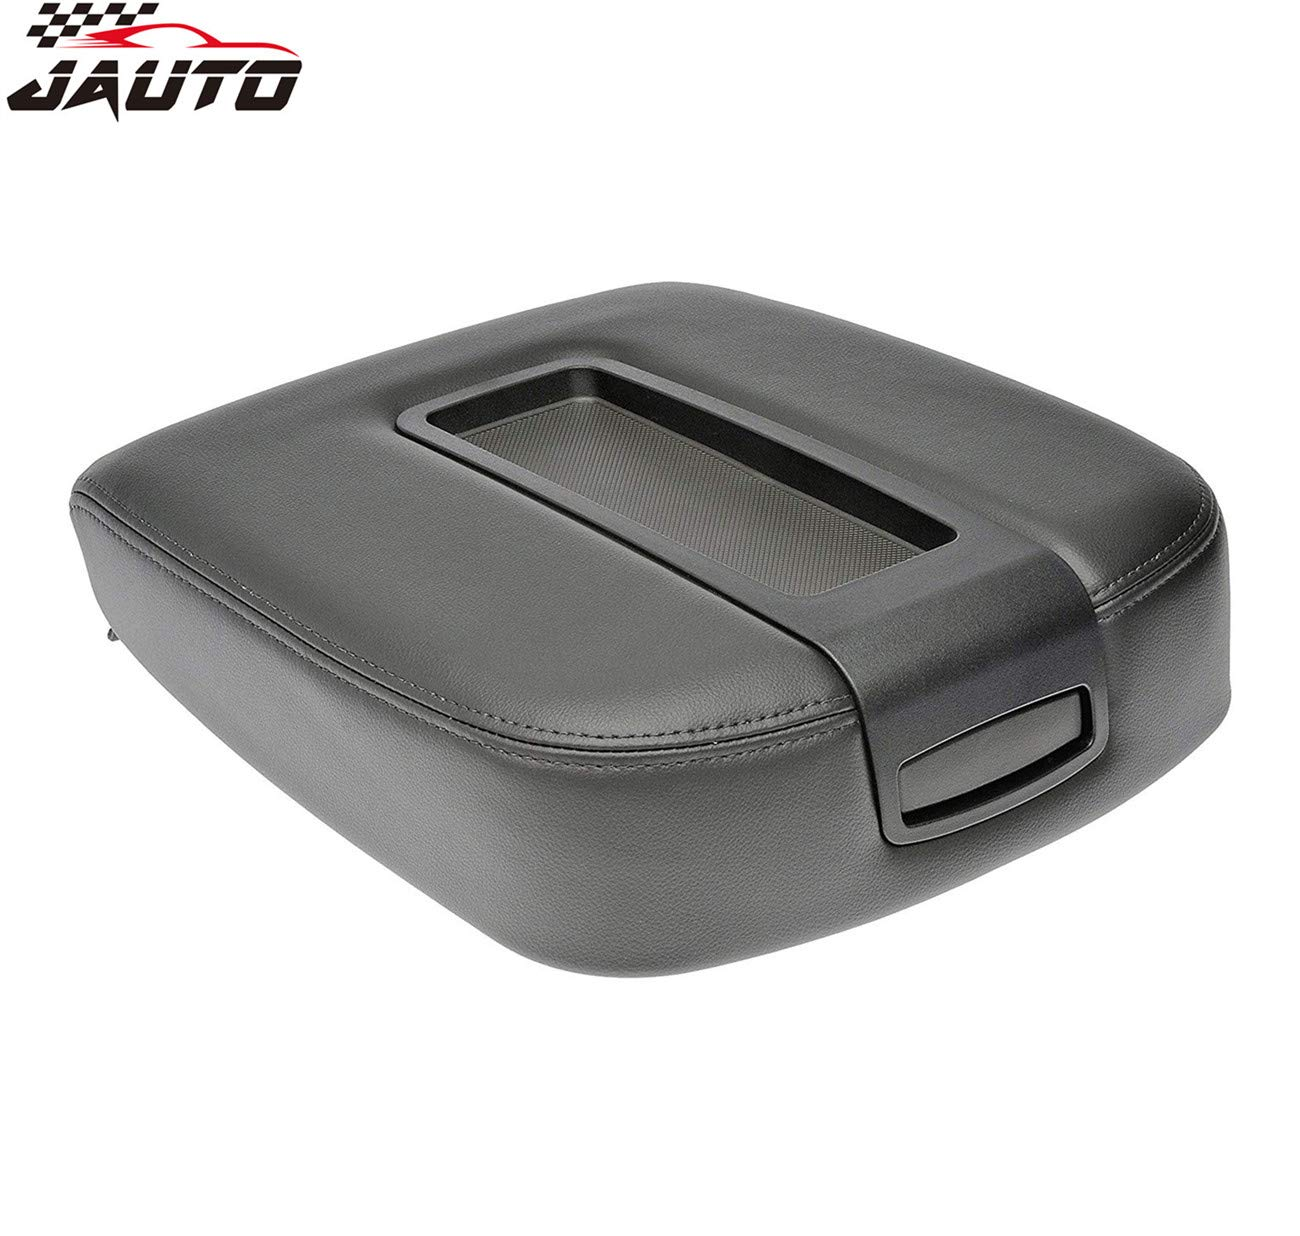 JAUTO Center Console Lid Kit for Select GM Vehicles - Replaces 15217111 15941534 - Black by JAUTO (Image #1)